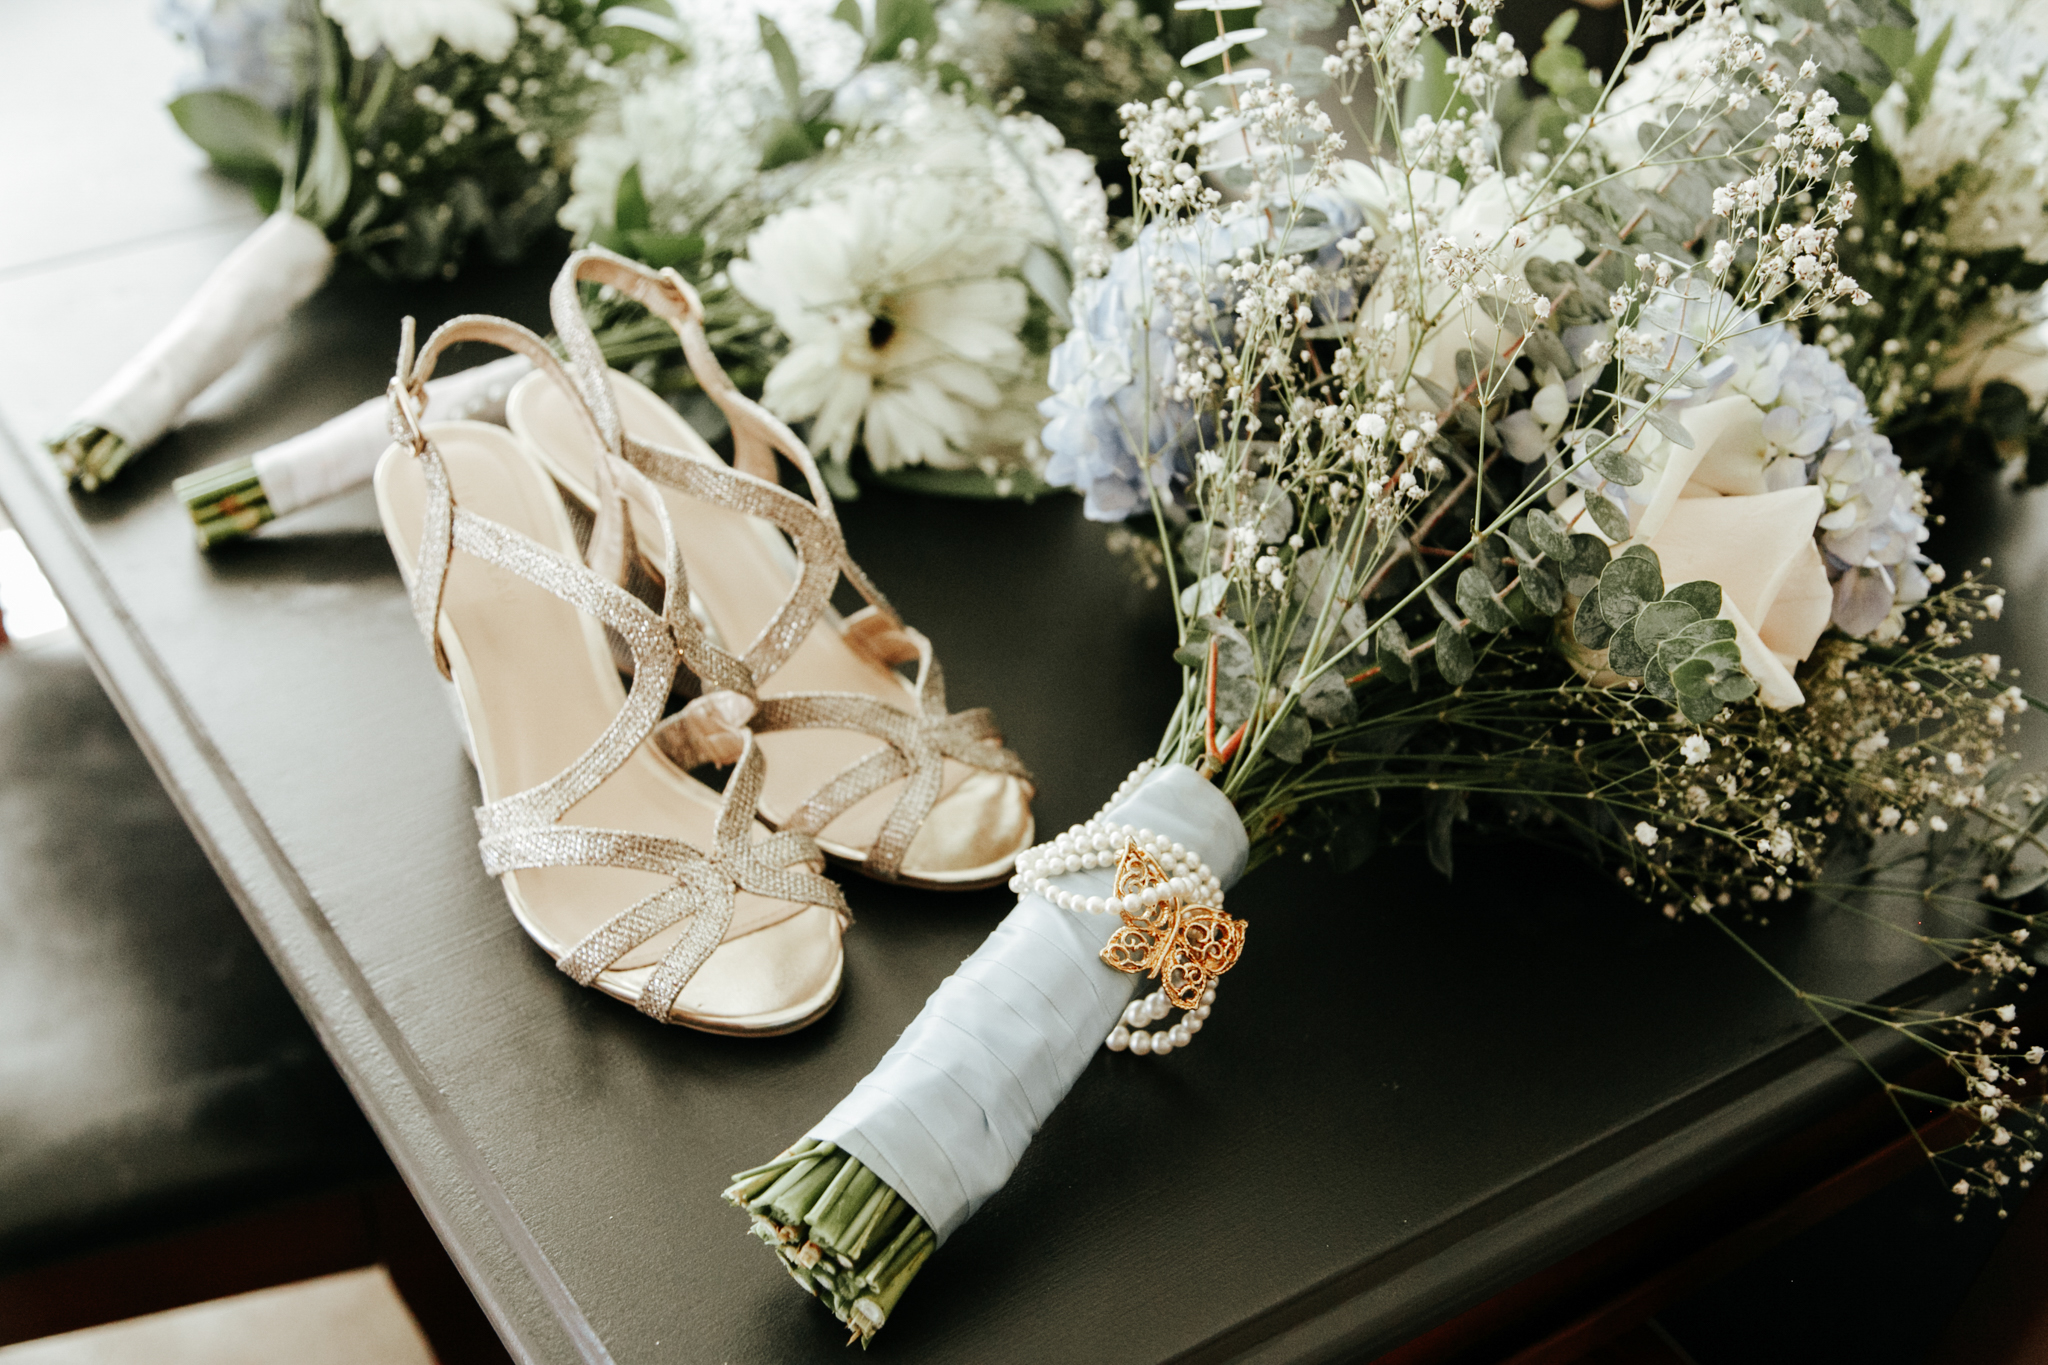 lethbridge-wedding-photographer-love-and-be-loved-photography-trent-danielle-galt-reception-picture-image-photo-1.jpg